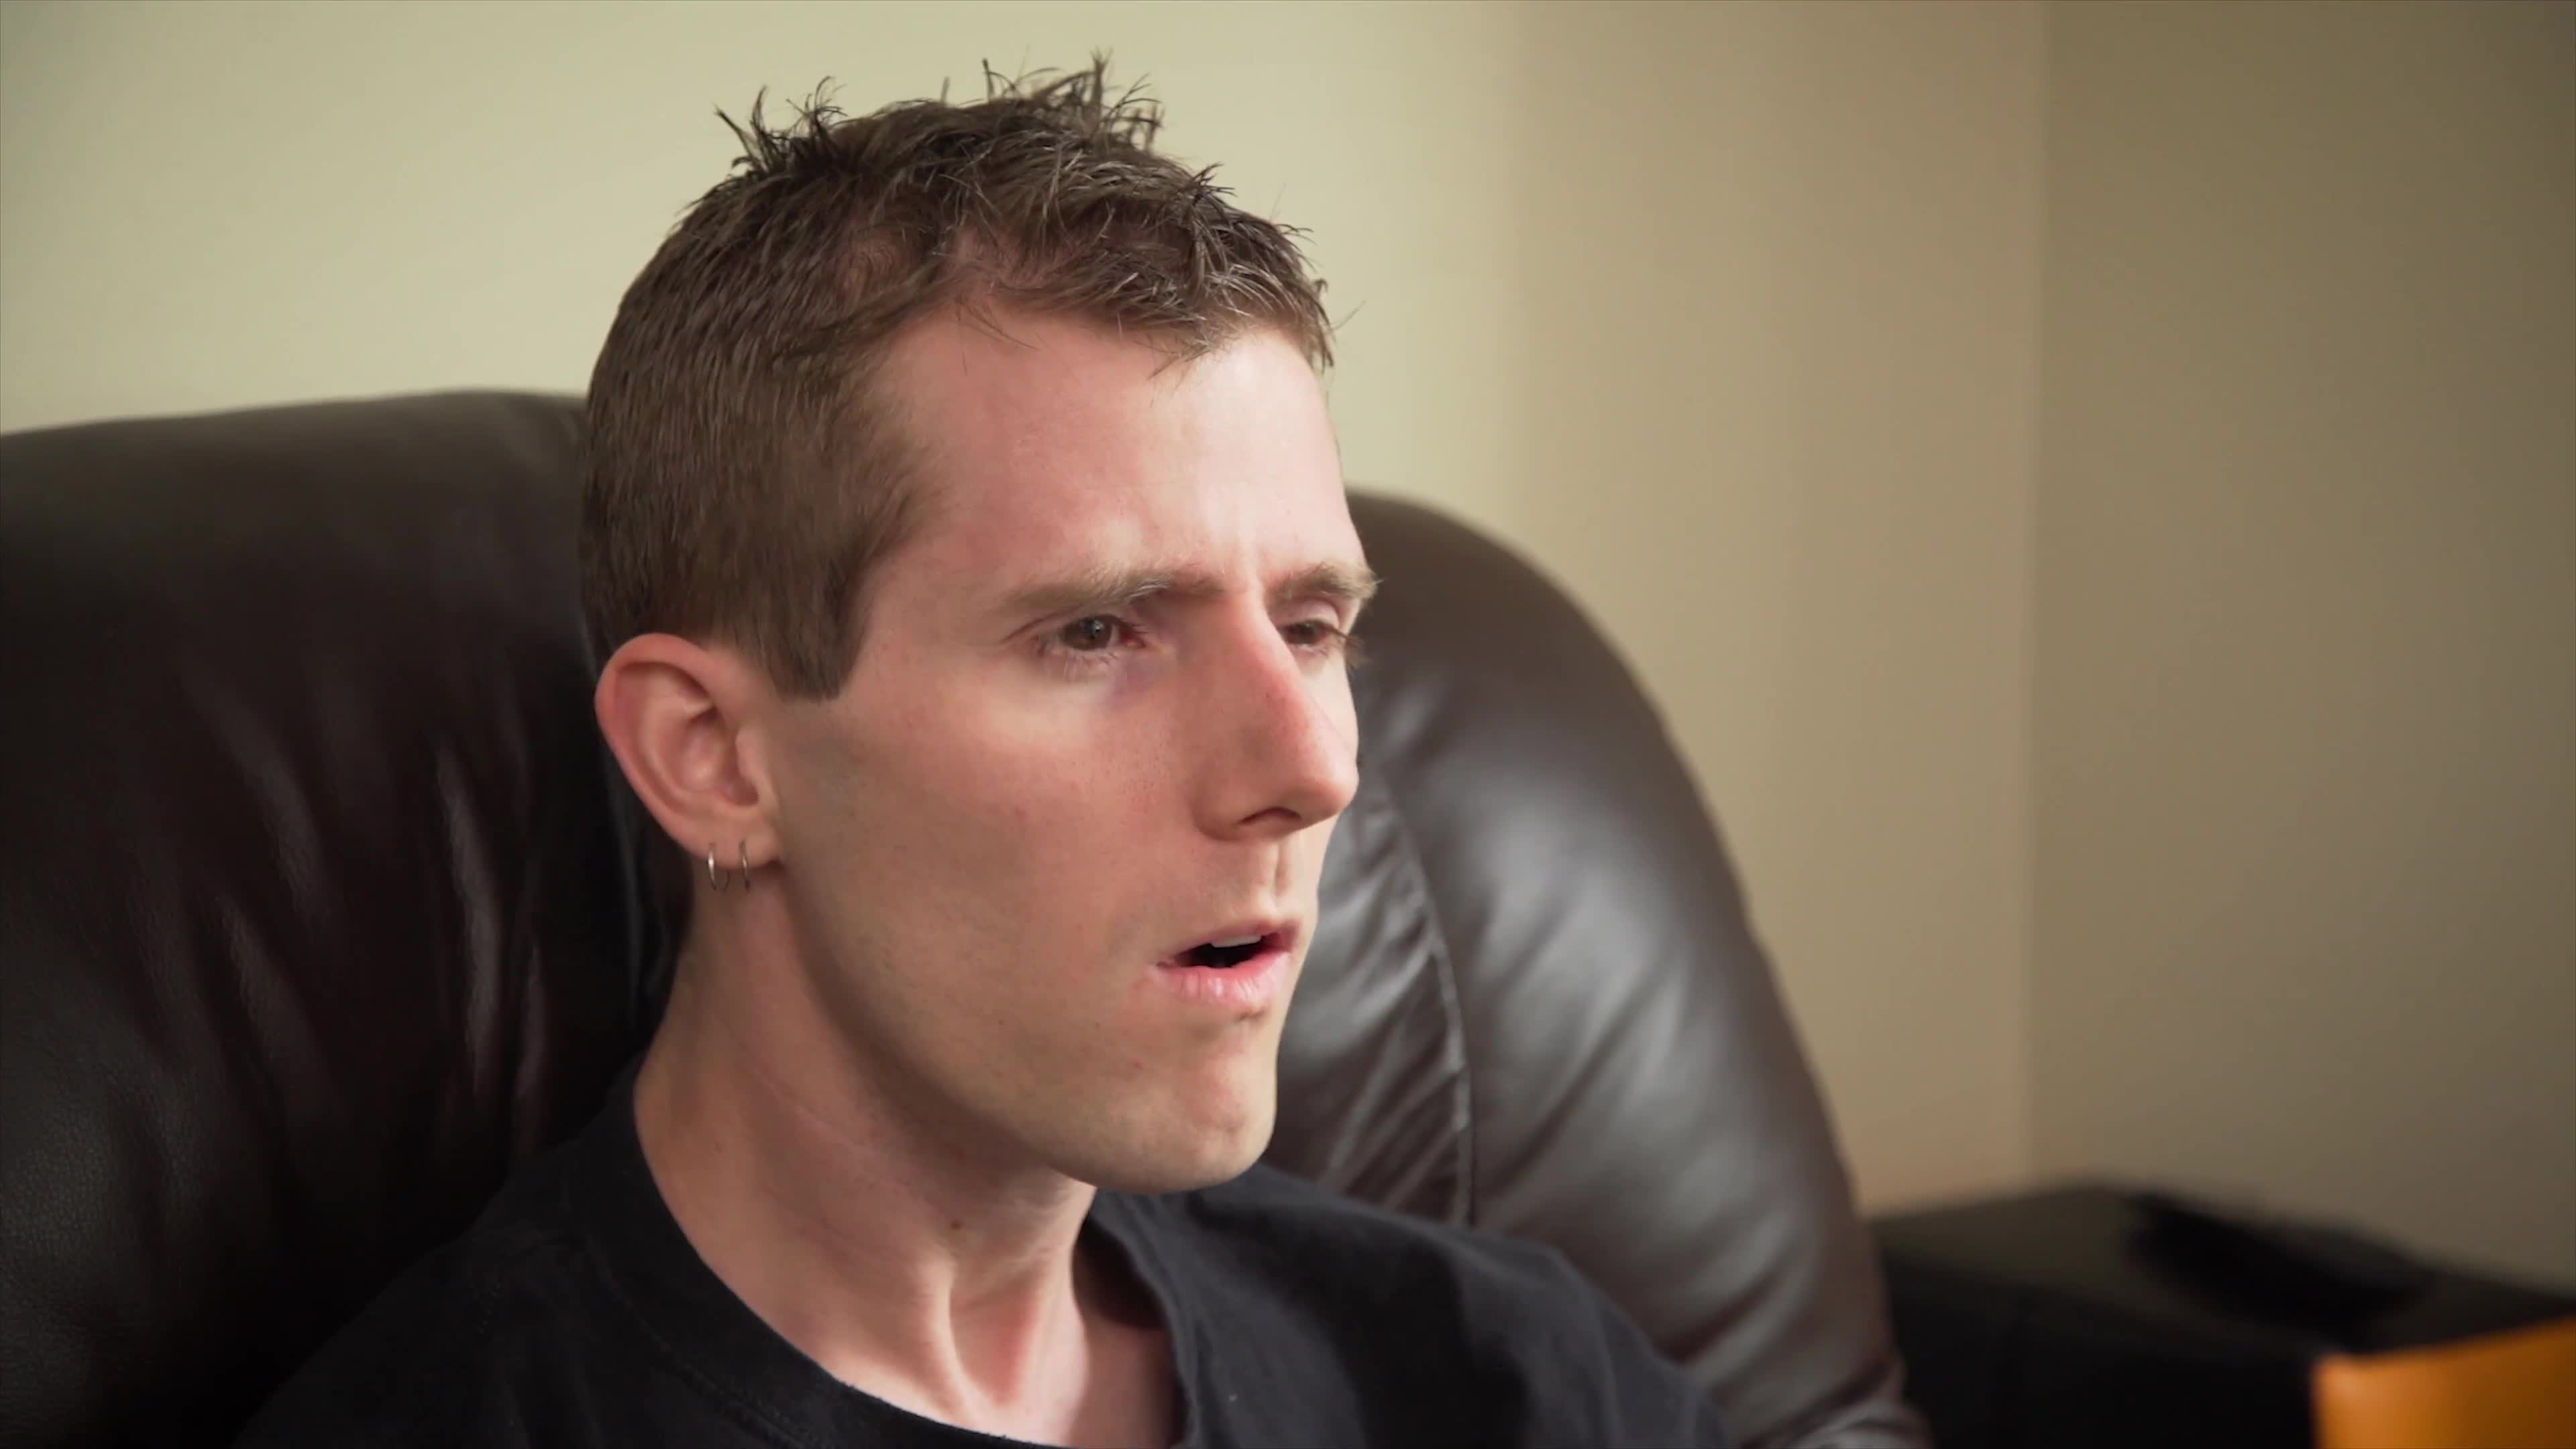 linusfaces, linustechtips, sova, The New King of Couch Gaming? GIFs